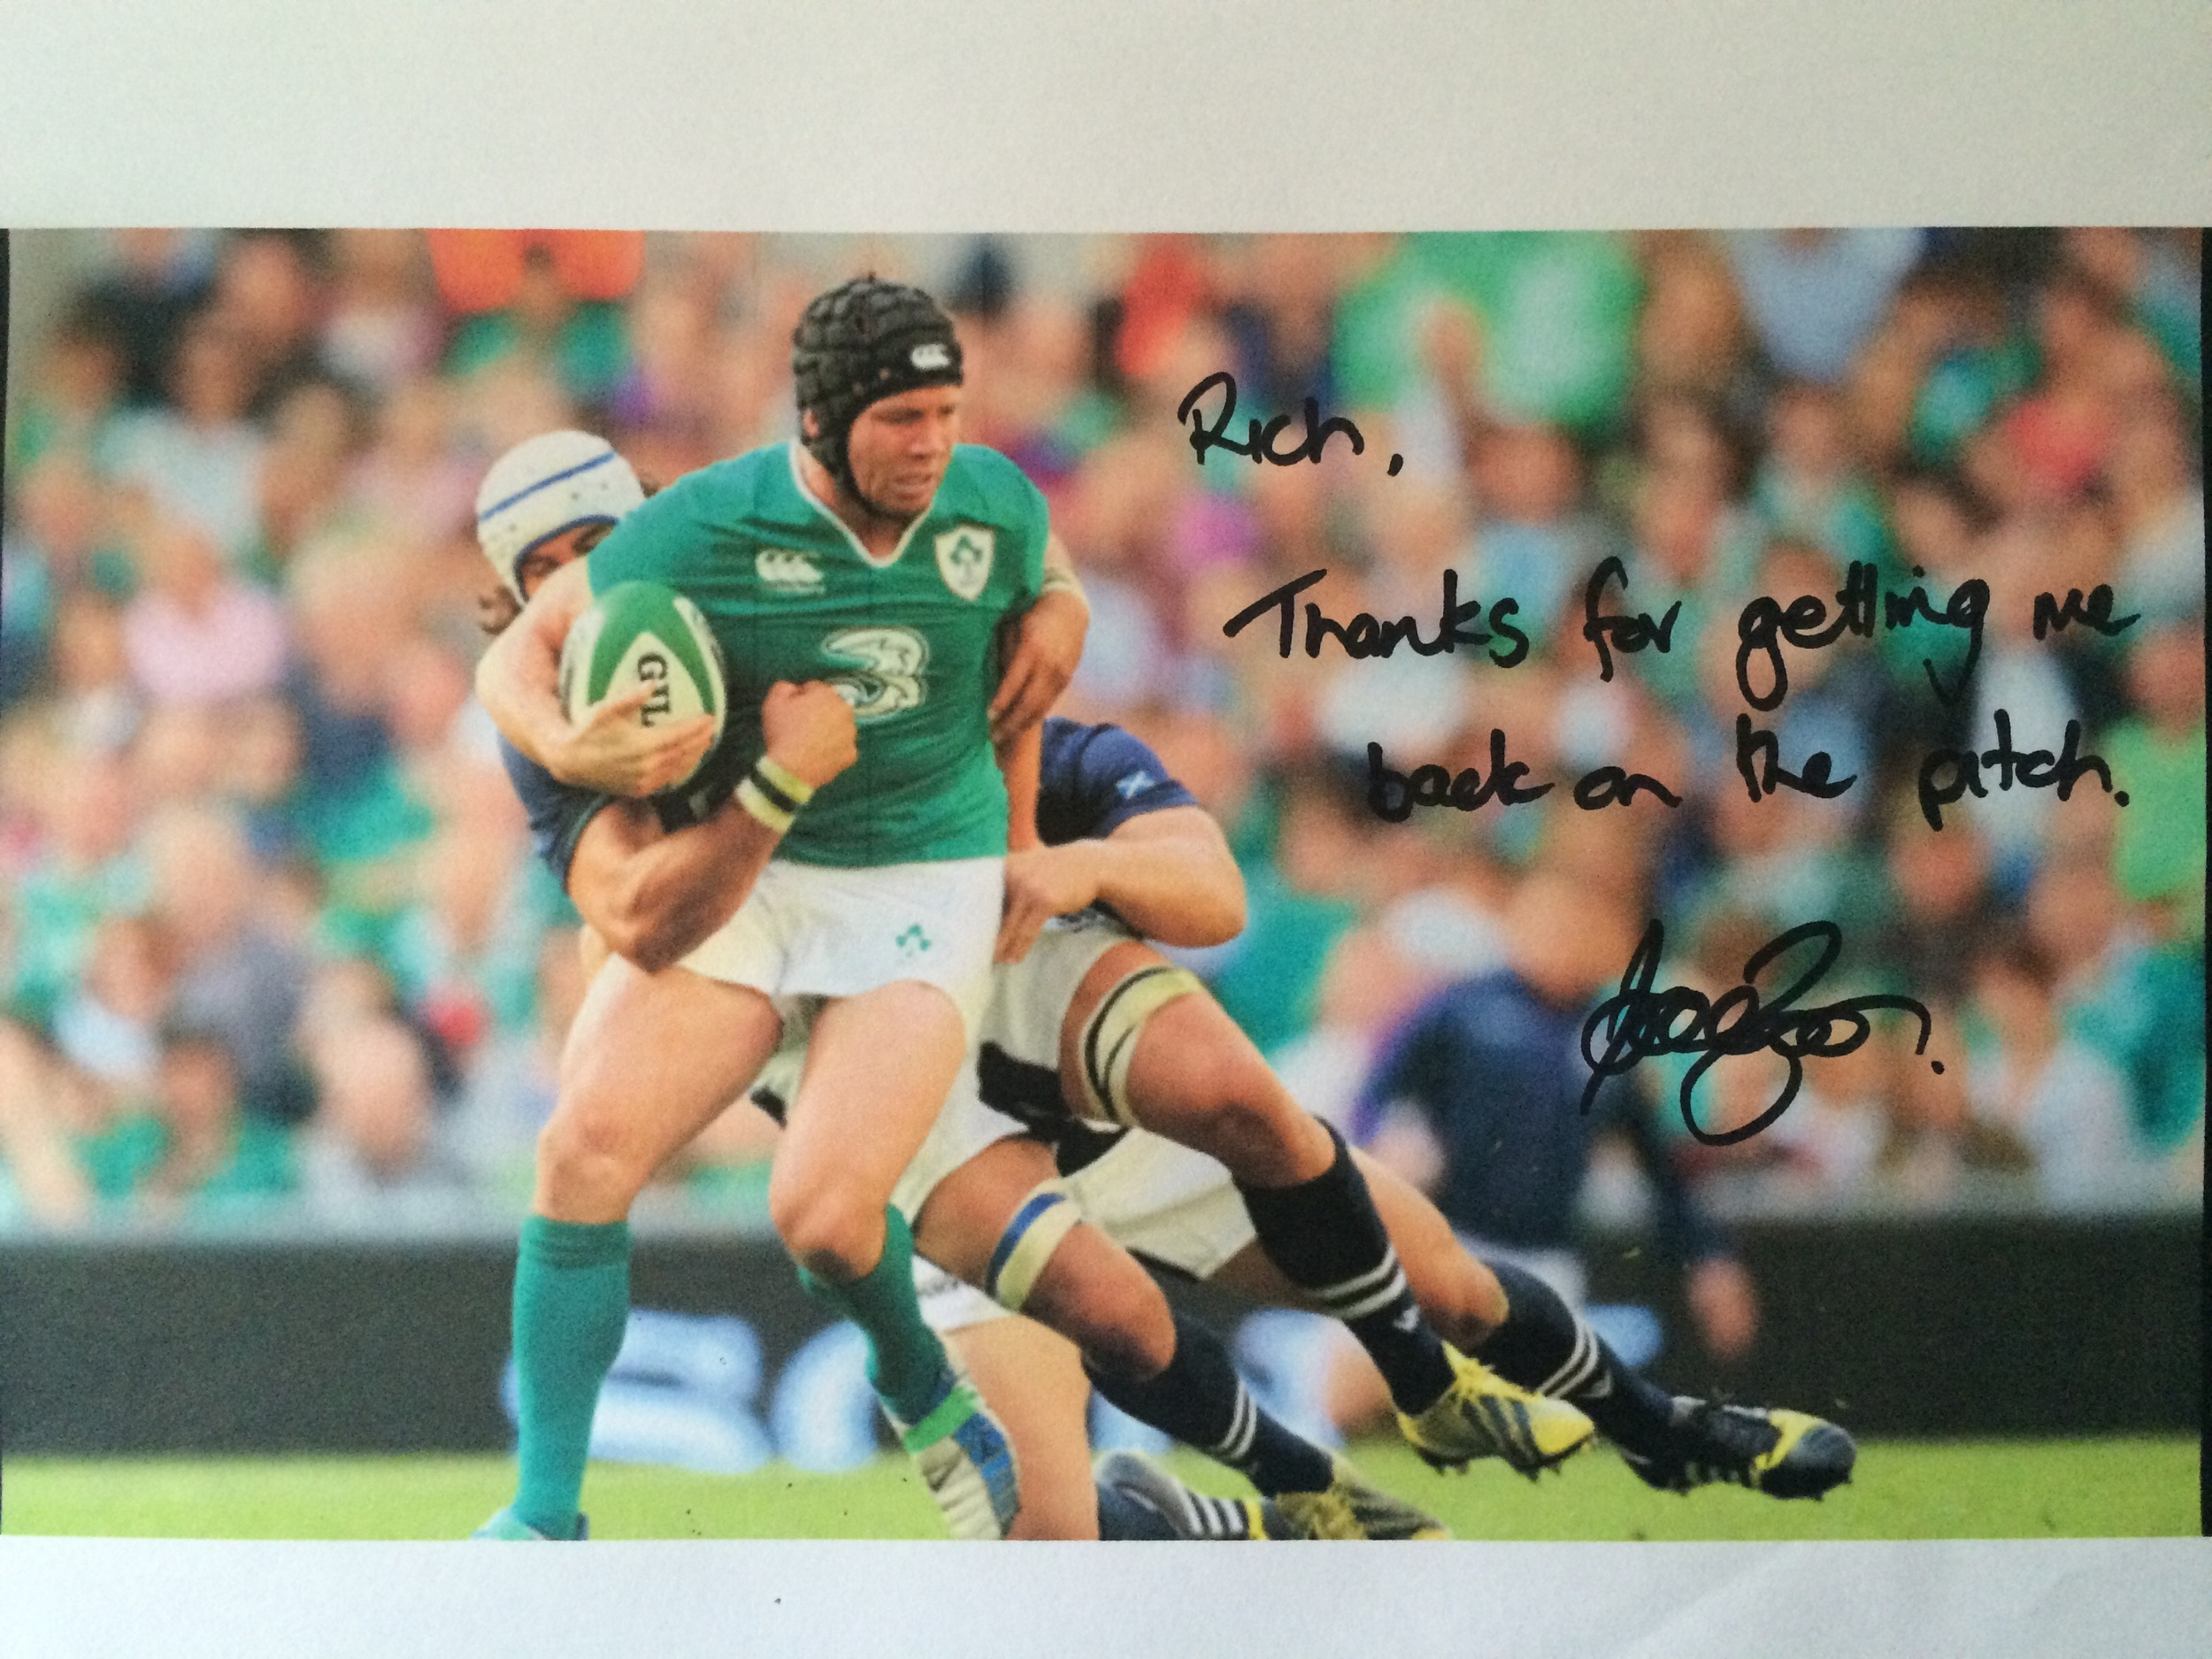 Ireland & Leinster Rugby Player, Isaac Boss. 'Rich thanks for getting me back on the pitch', Isaac Boss